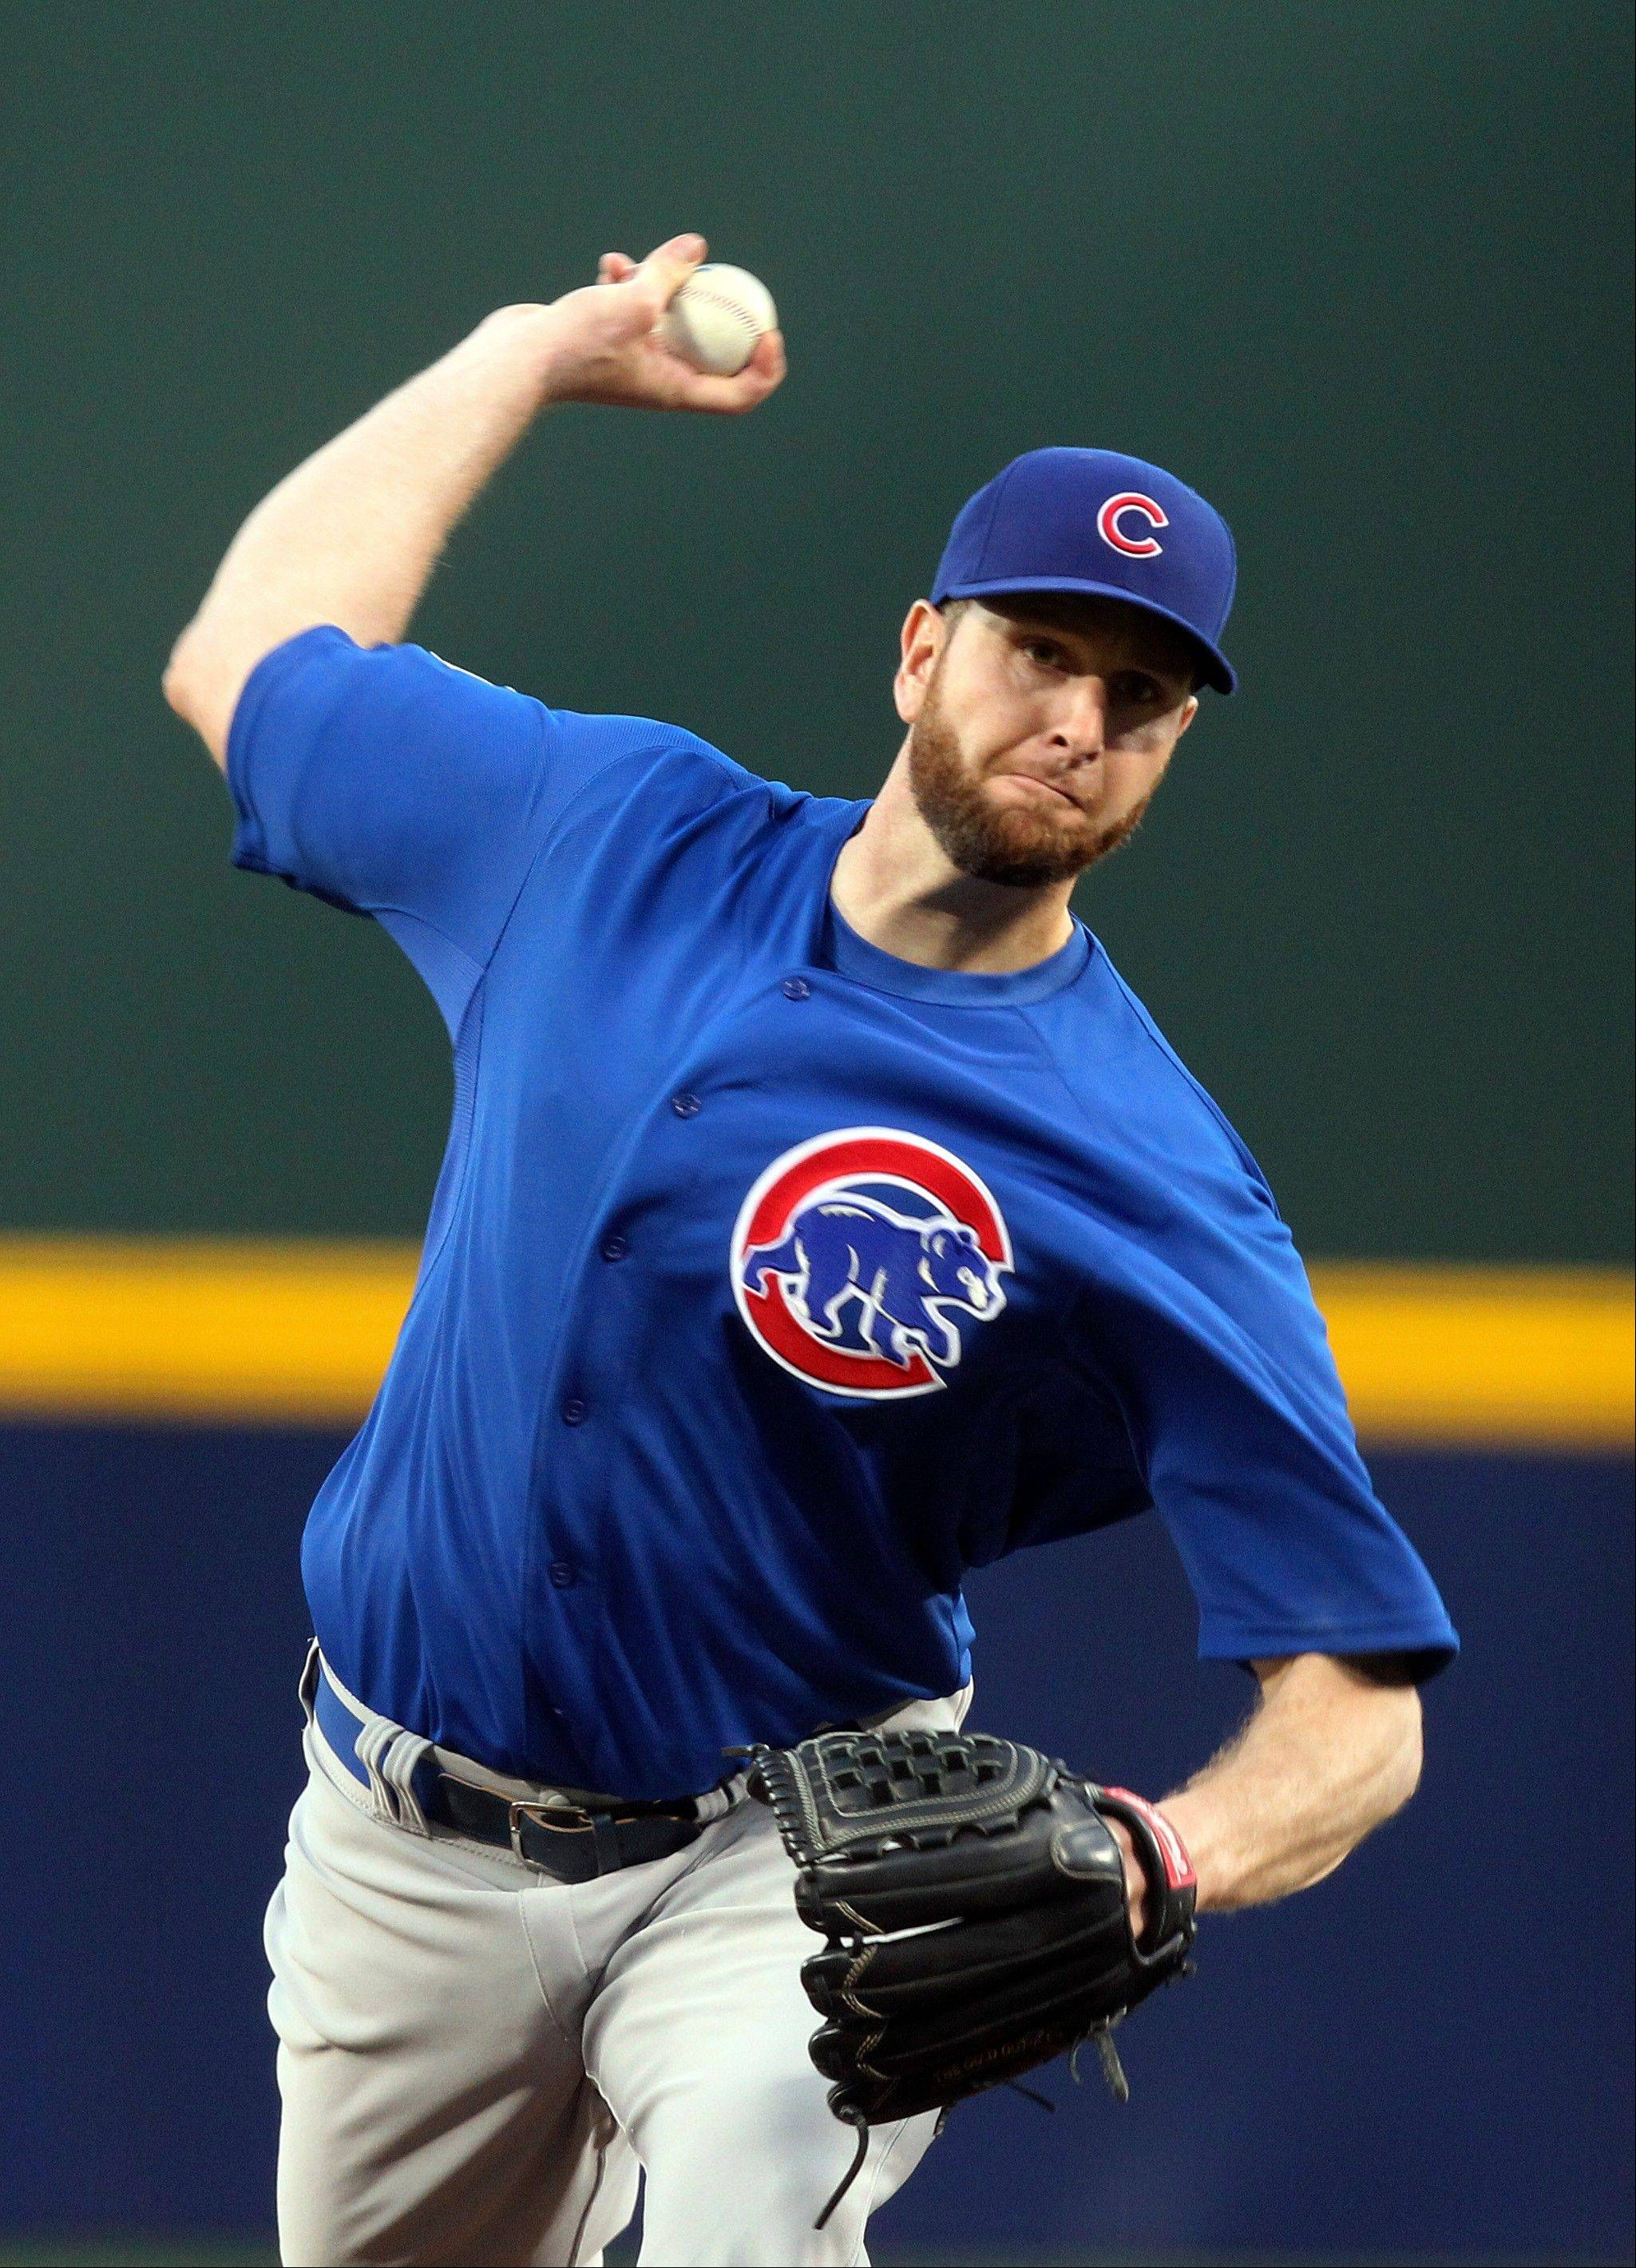 Chicago Cubs starting pitcher Scott Feldman pitches against the Atlanta Braves in the first inning of a baseball game, Friday, April 5, 2013, in Atlanta.